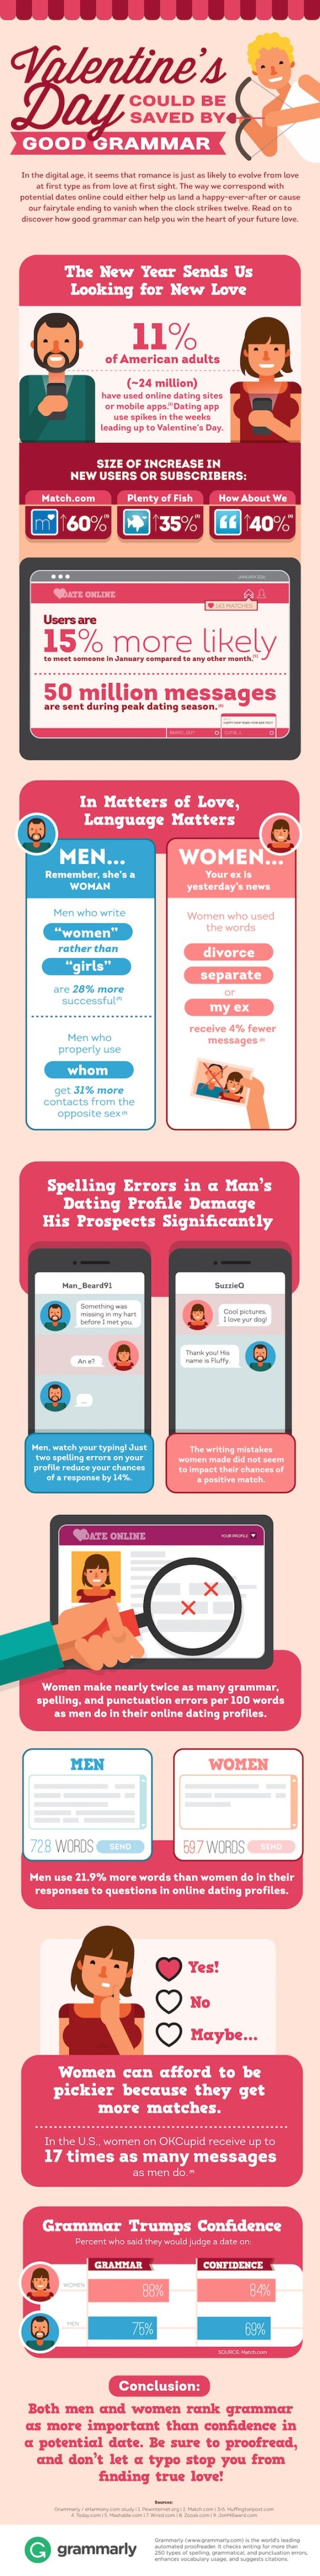 Save Valentine's Day by good grammar #infographic